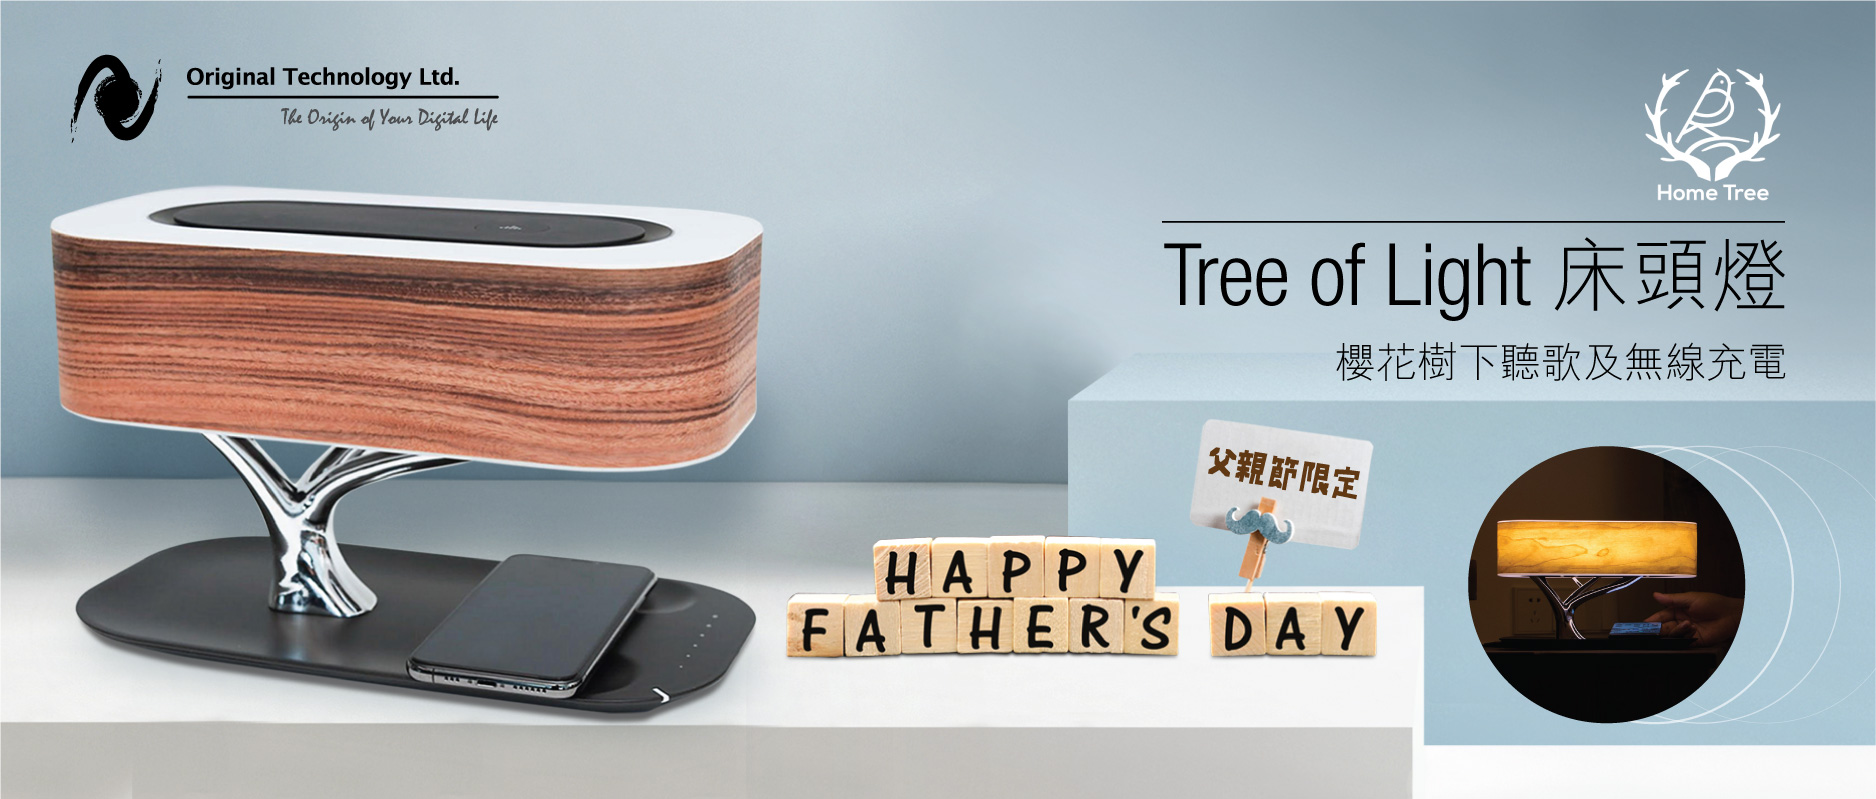 Father's Day 限定優惠 Limited Offer